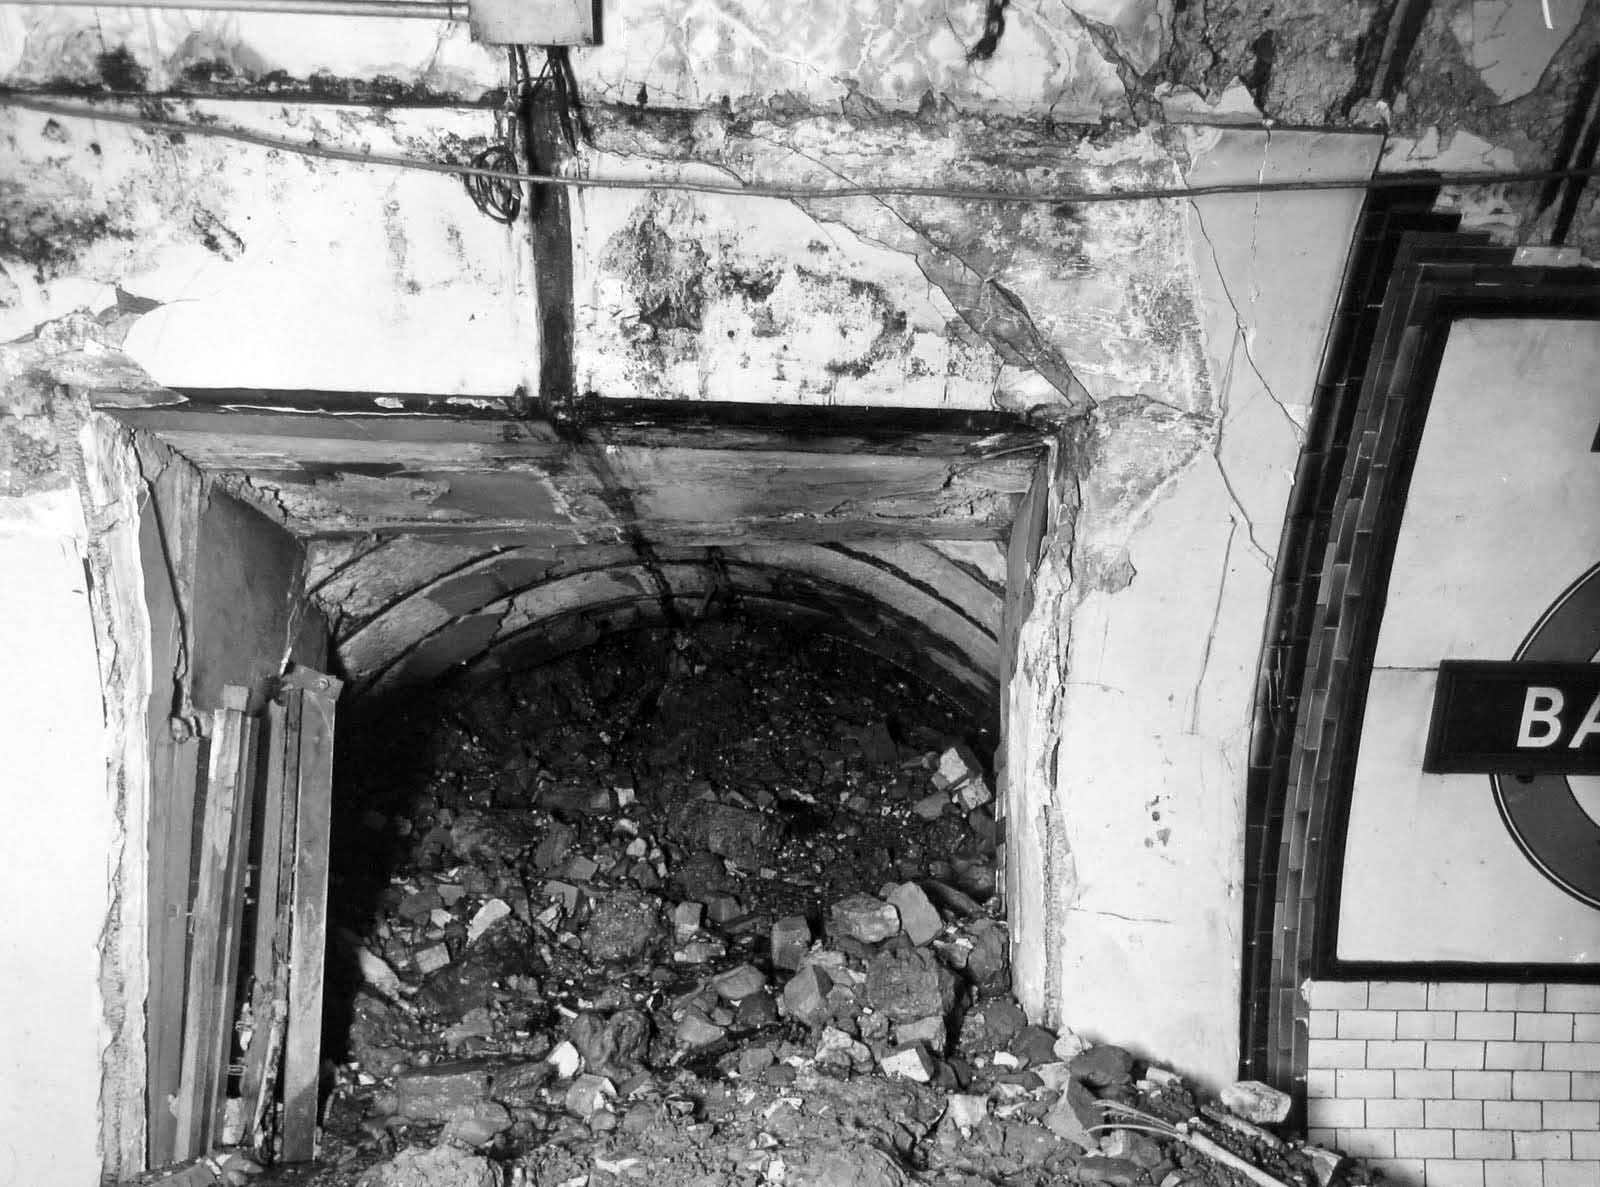 This view shows a cross-passage at the station, almost filled with rubble.